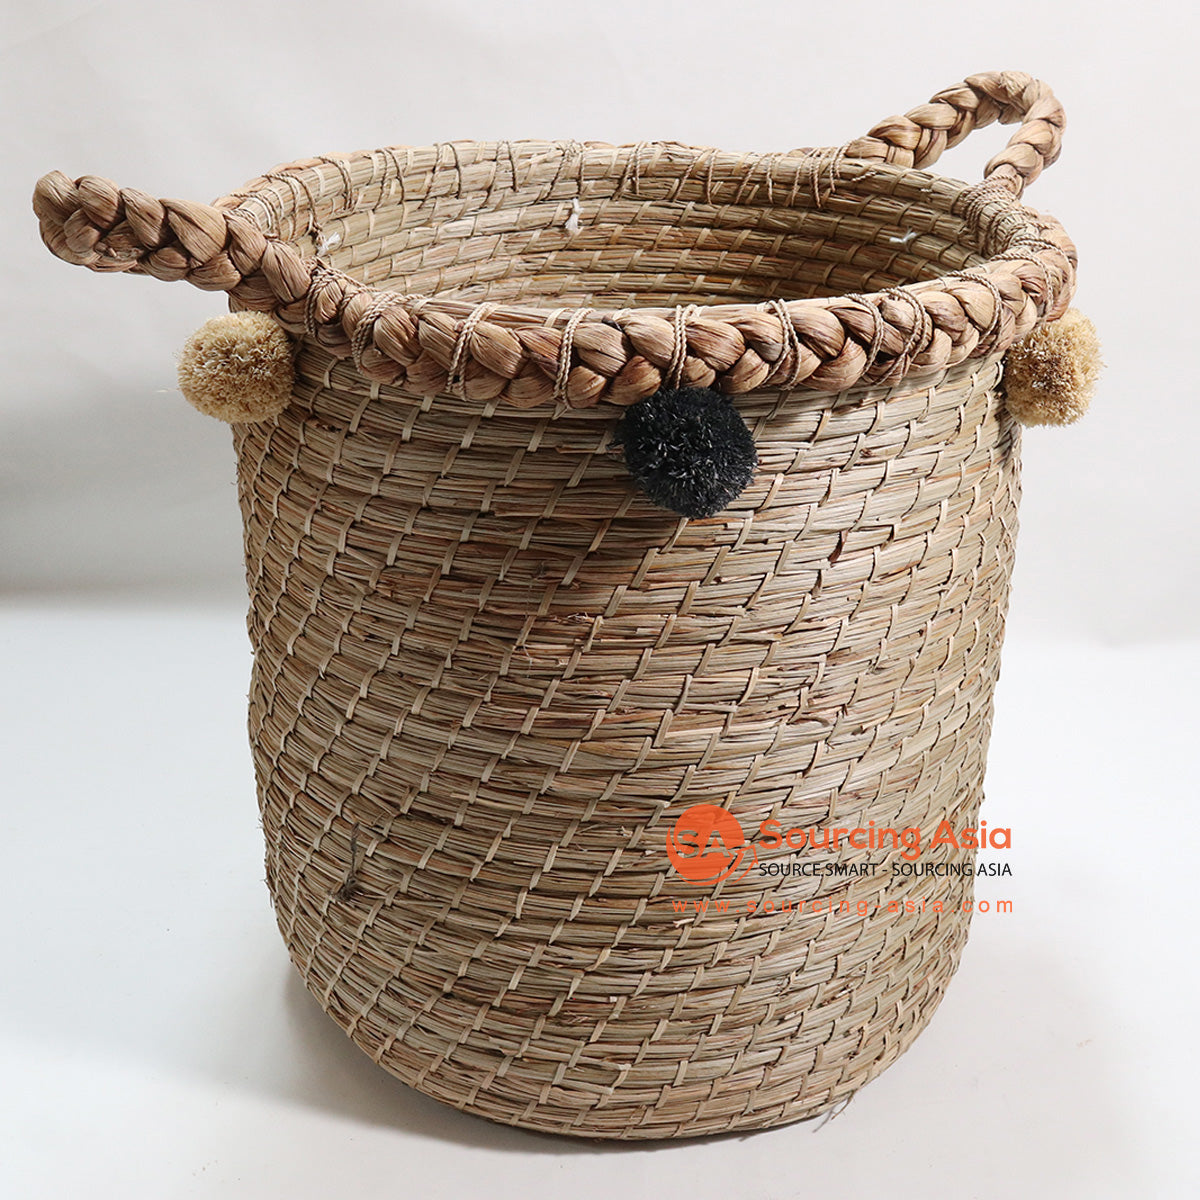 HBSC090-1 LARGE SIZE MENDONG BASKET